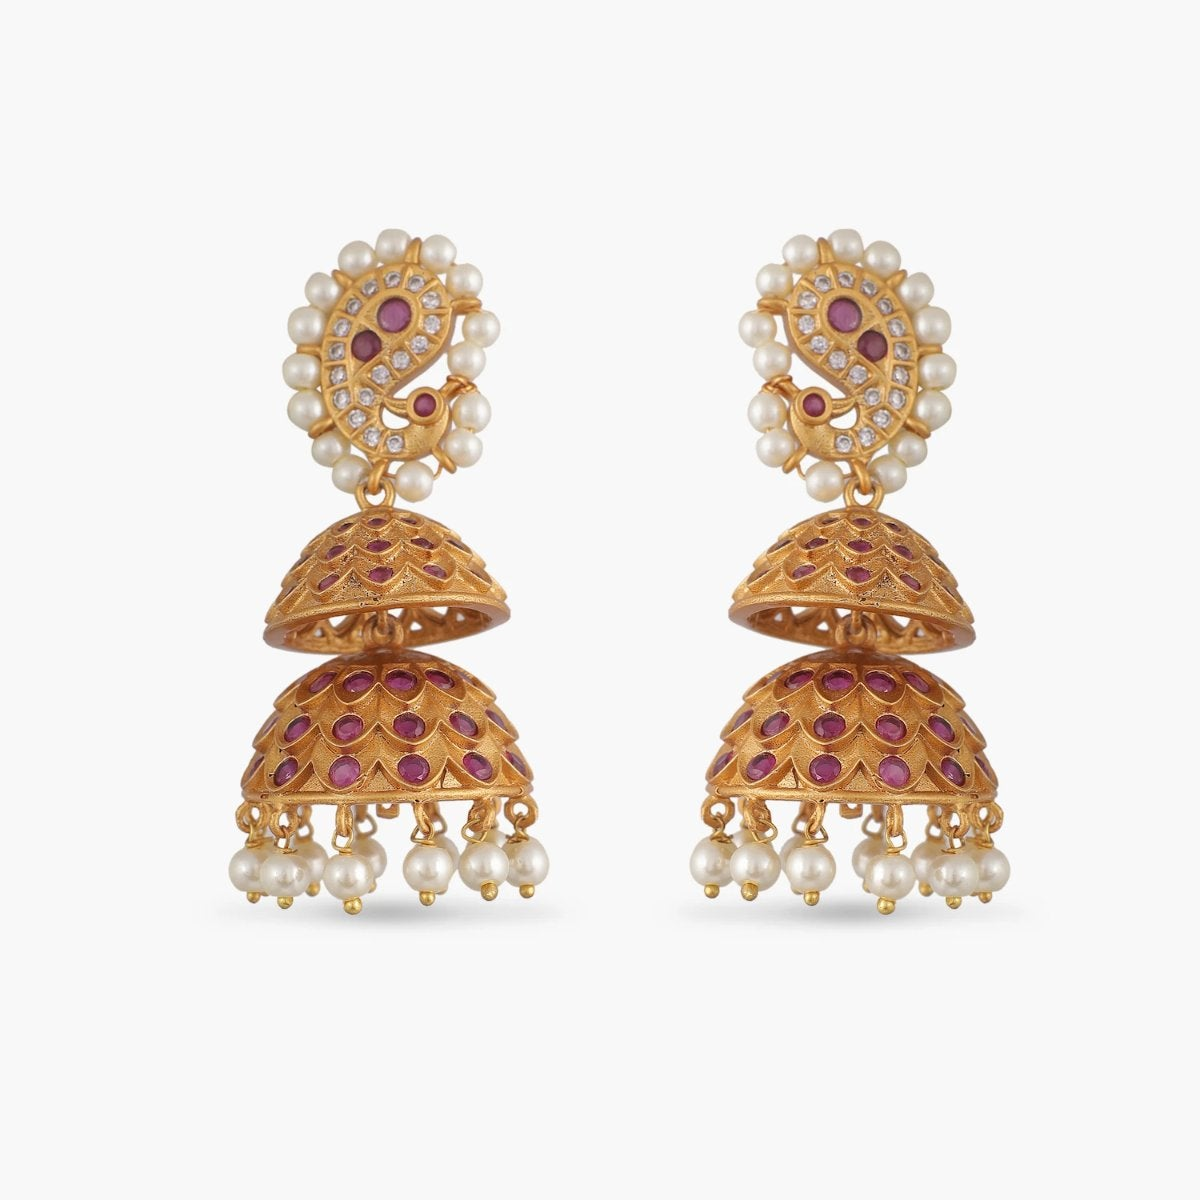 Nadira Antique Jhumka Earrings